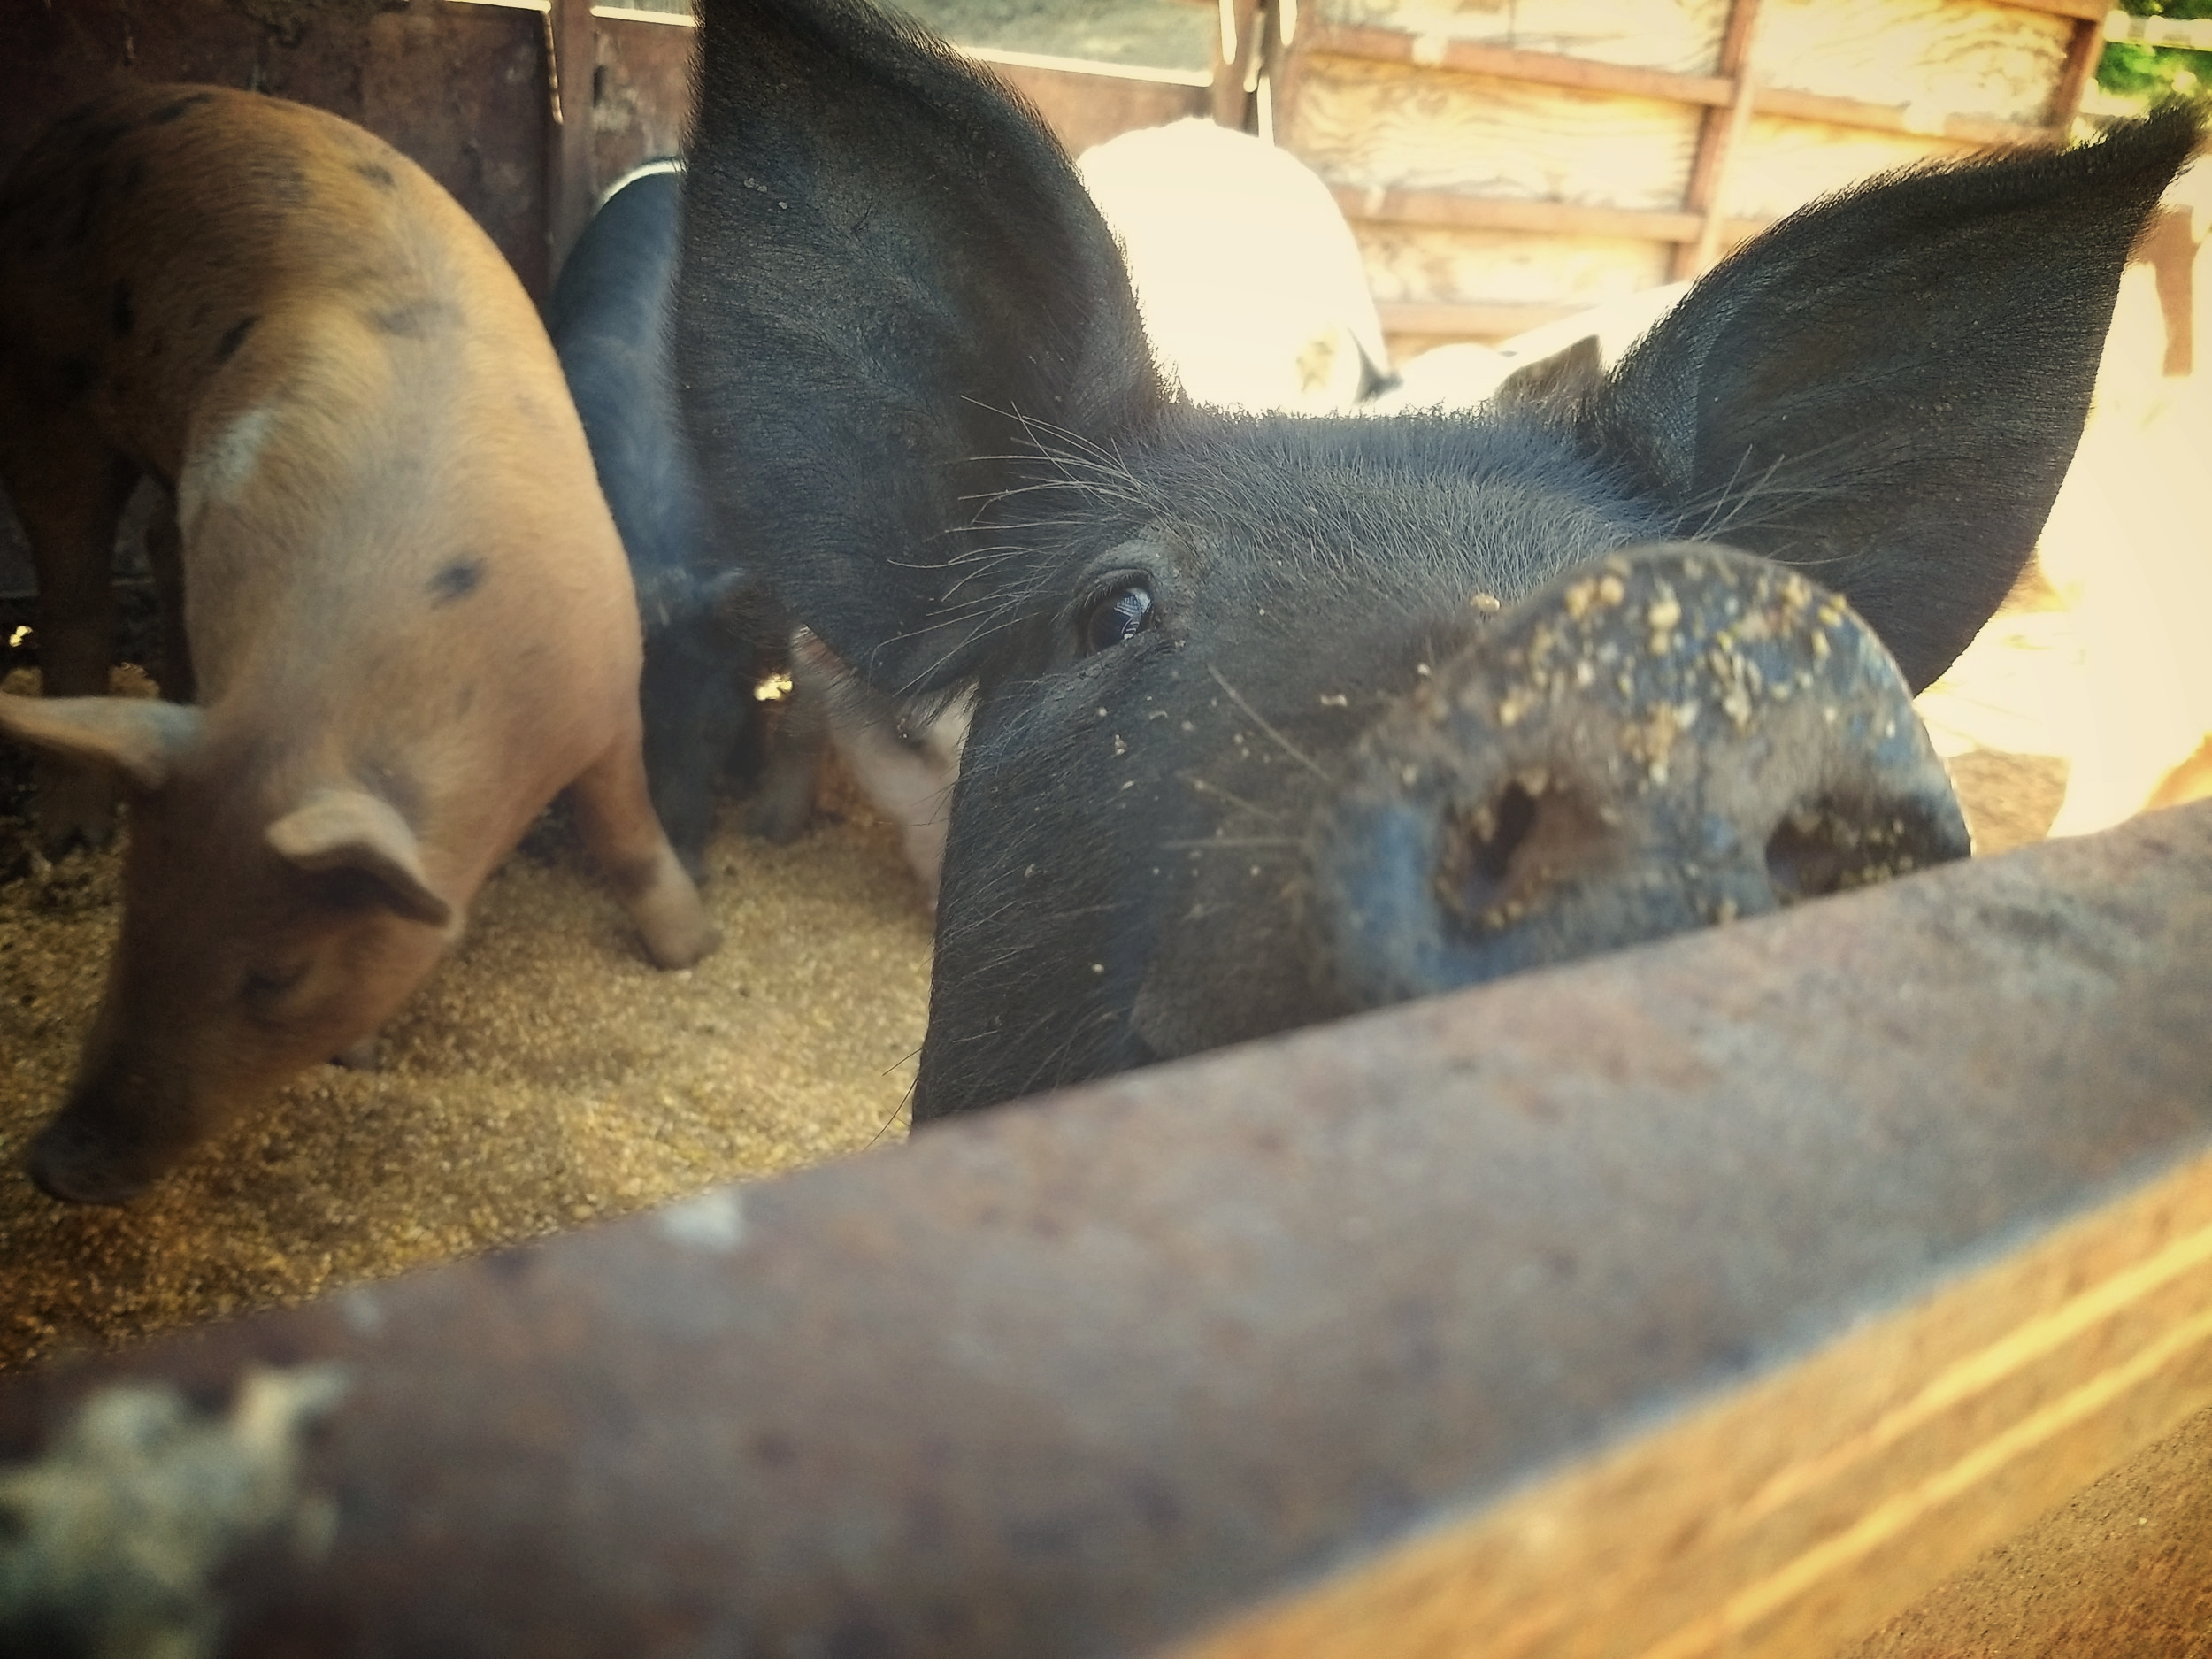 The Pigs - The piggies have spent the latter half of September and most of October on the front side of the ridge since we got them. The hope was that they would perhaps roll around in the pond there and seal it so that it would start catching run off rain and hold water again. Unfortunately these pigs were just too young to really know how to do this and with the weather getting cold they needed more space to forage and move. So we set the trailer up in their pen and got them use to eating in it so they would load up easily and we could move them to the big pen. After a few days of feeding they joyfully ran into the trailer and were calmly moved to their big field where they are enjoying acorns, roots and all sorts of new things to eat and play with!!